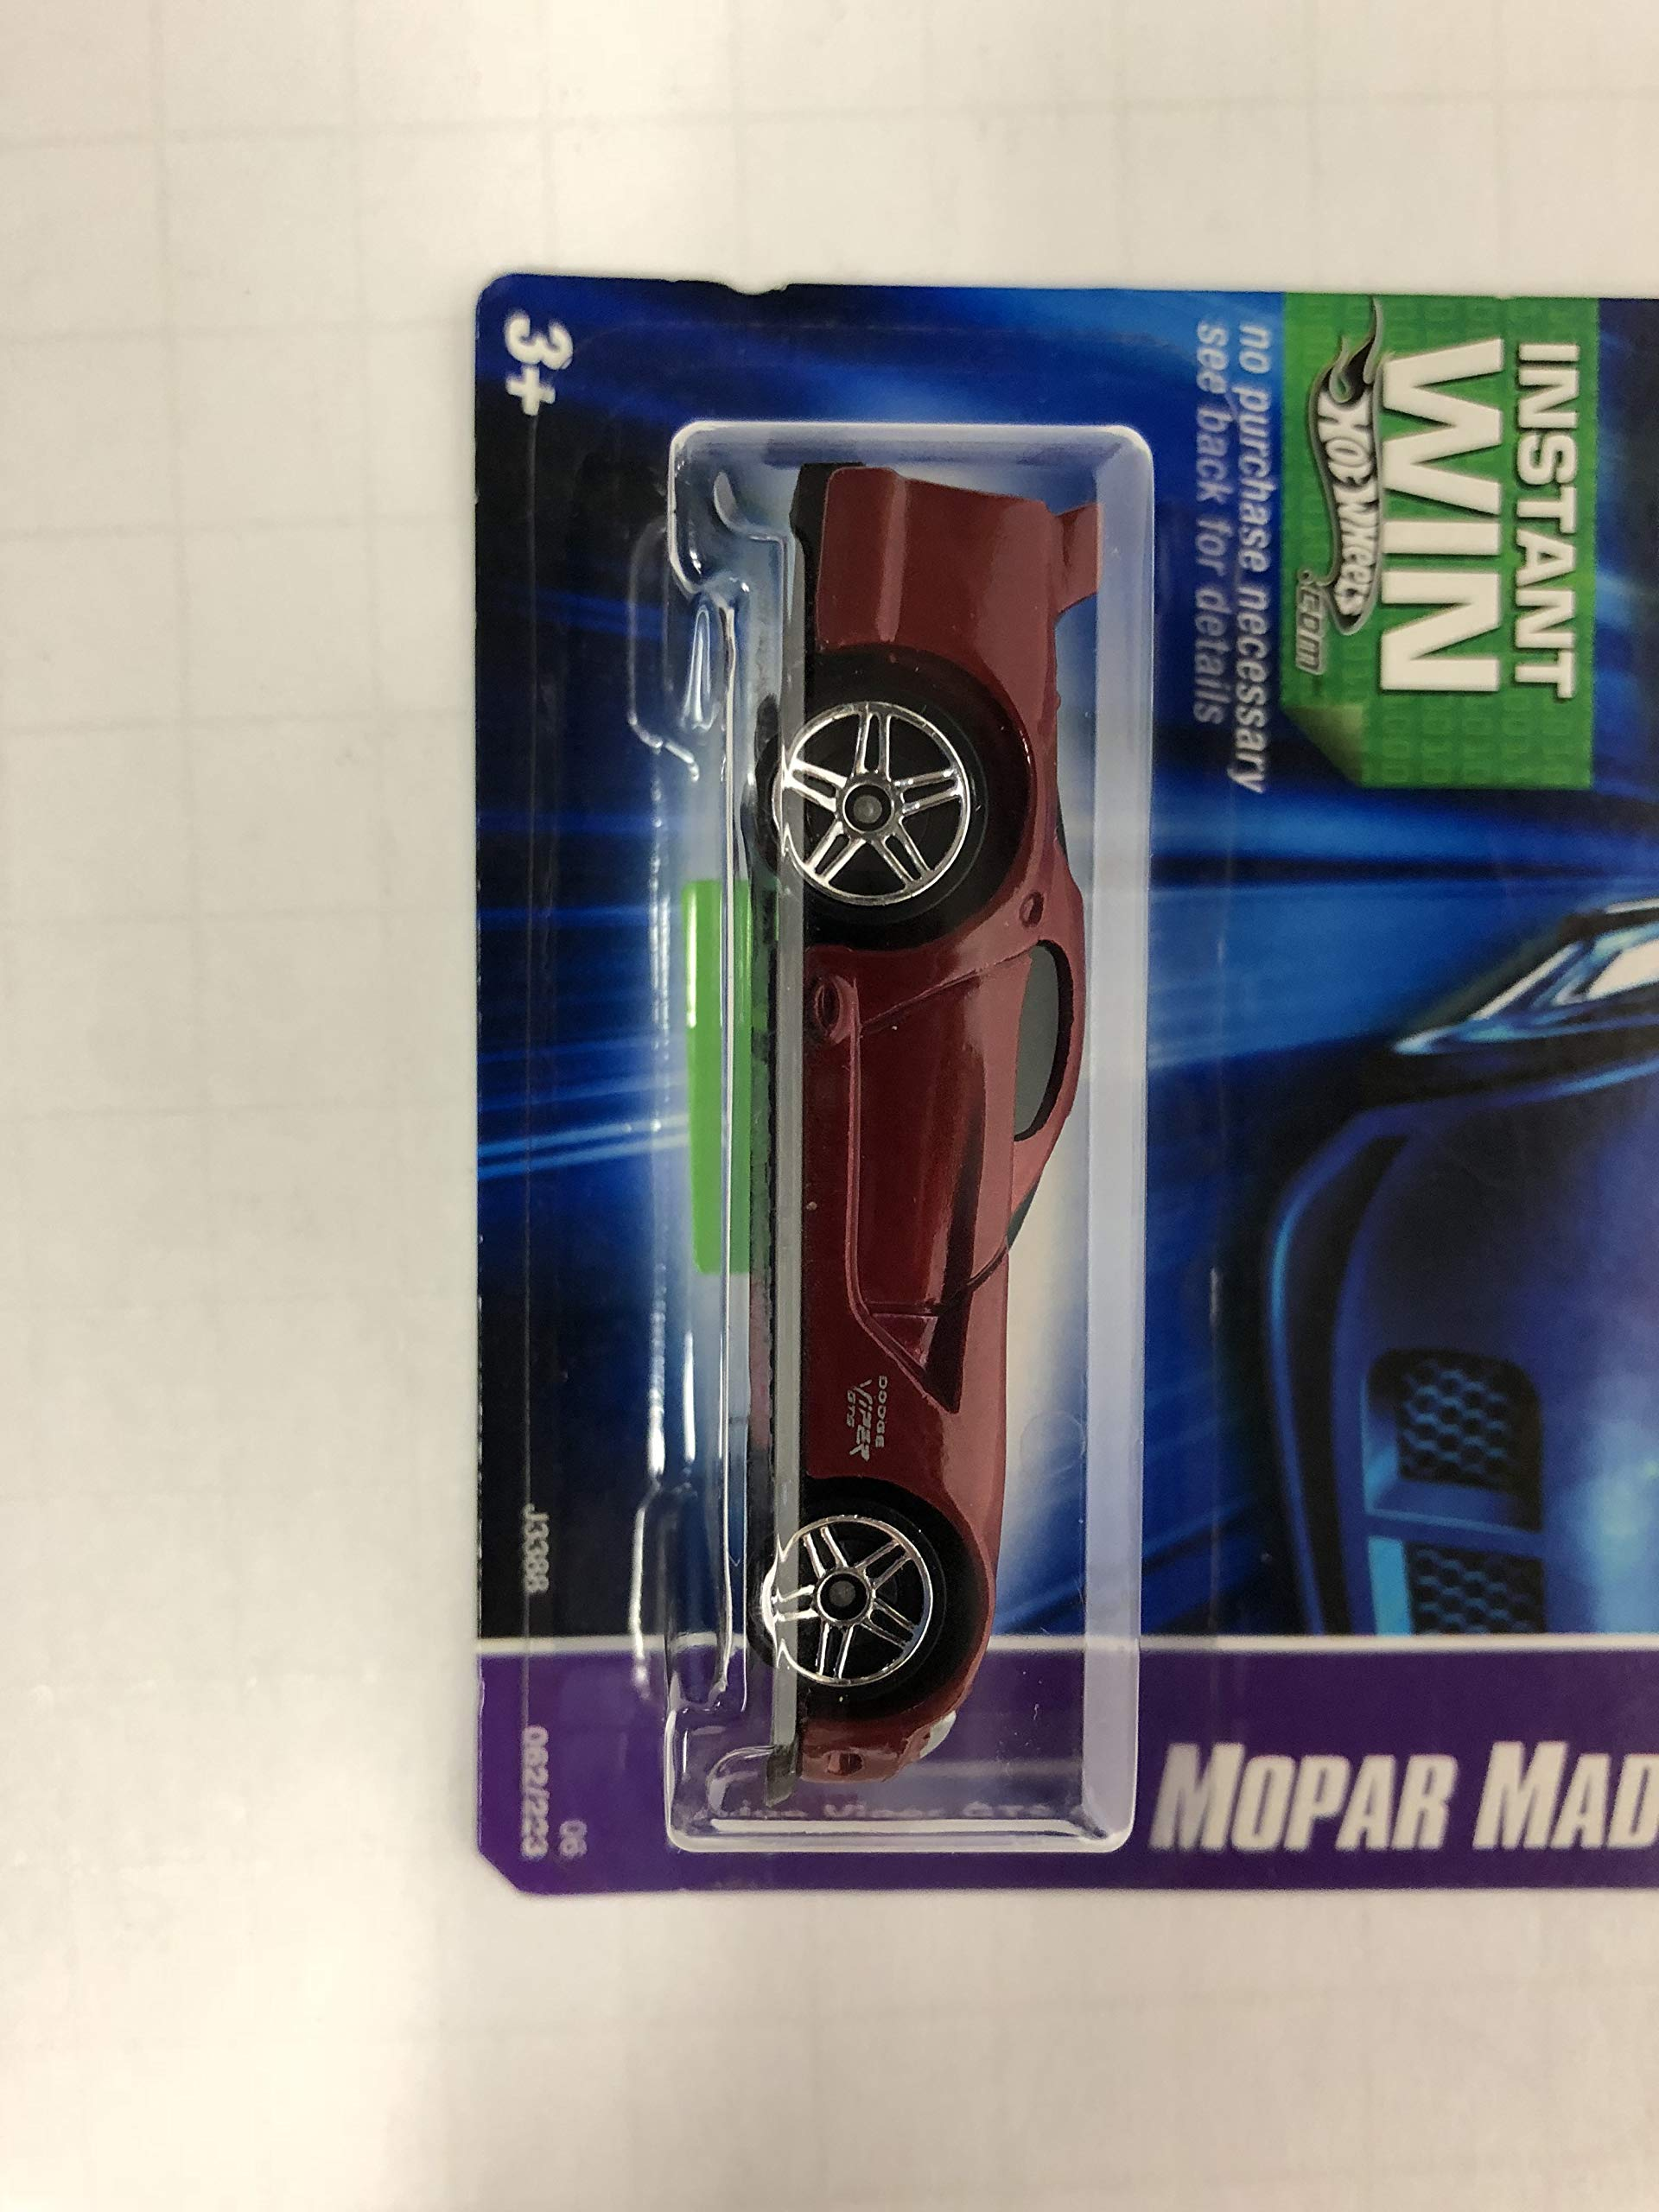 Dodge Viper GTS R Mopar Madness No. 062 Hot Wheels 2006 1/64 scale diecast car